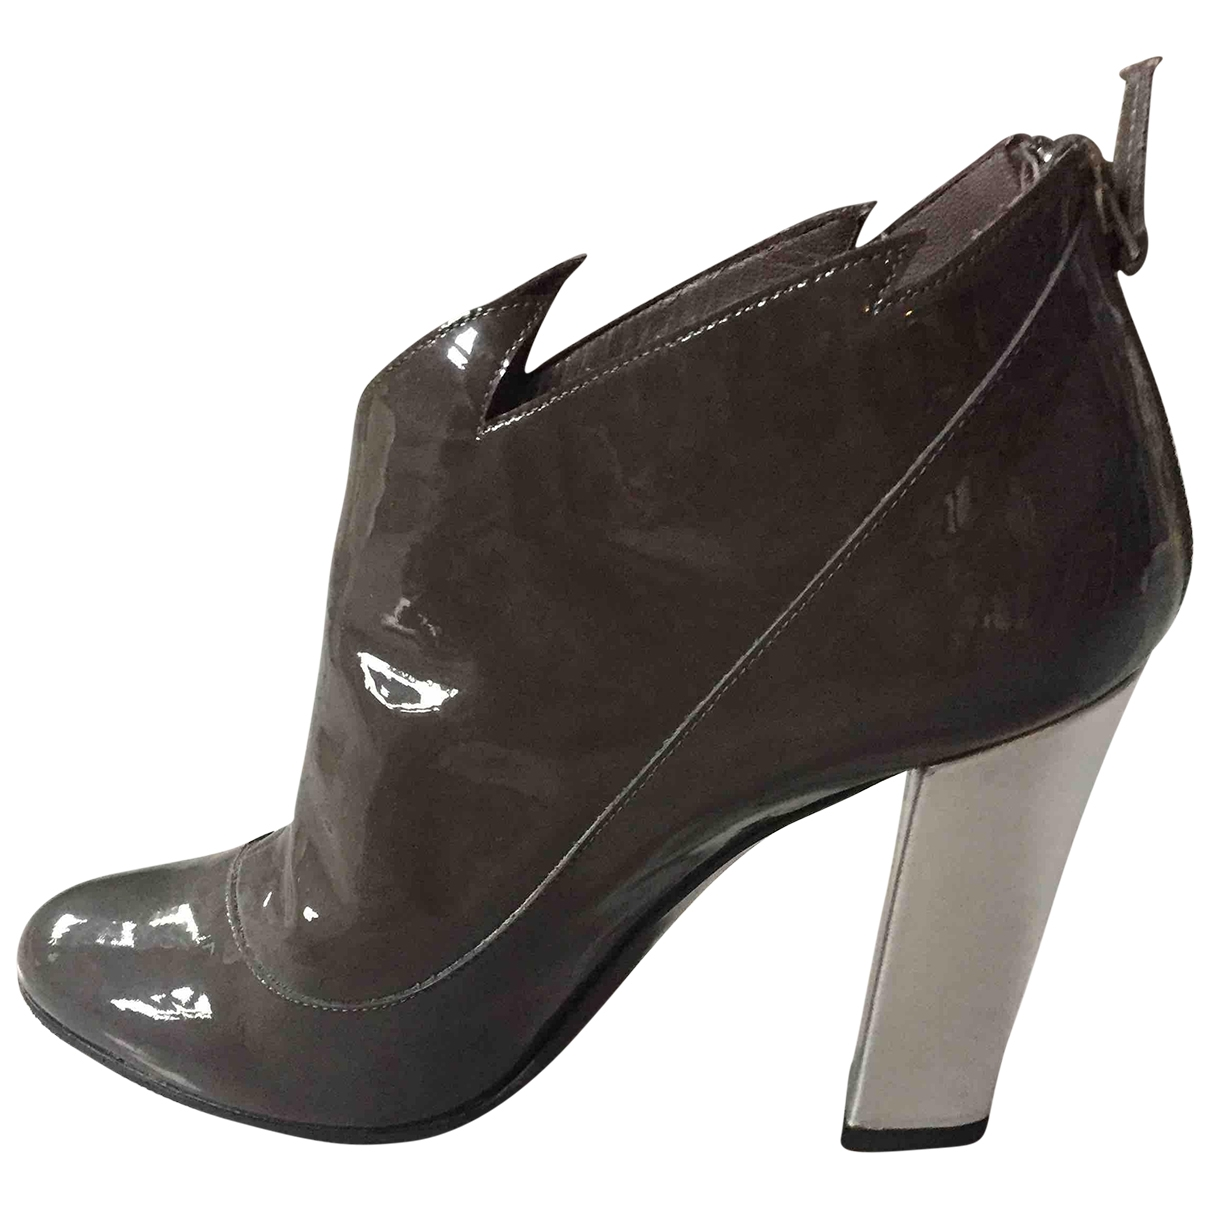 Laurence Dacade \N Grey Patent leather Ankle boots for Women 39 EU